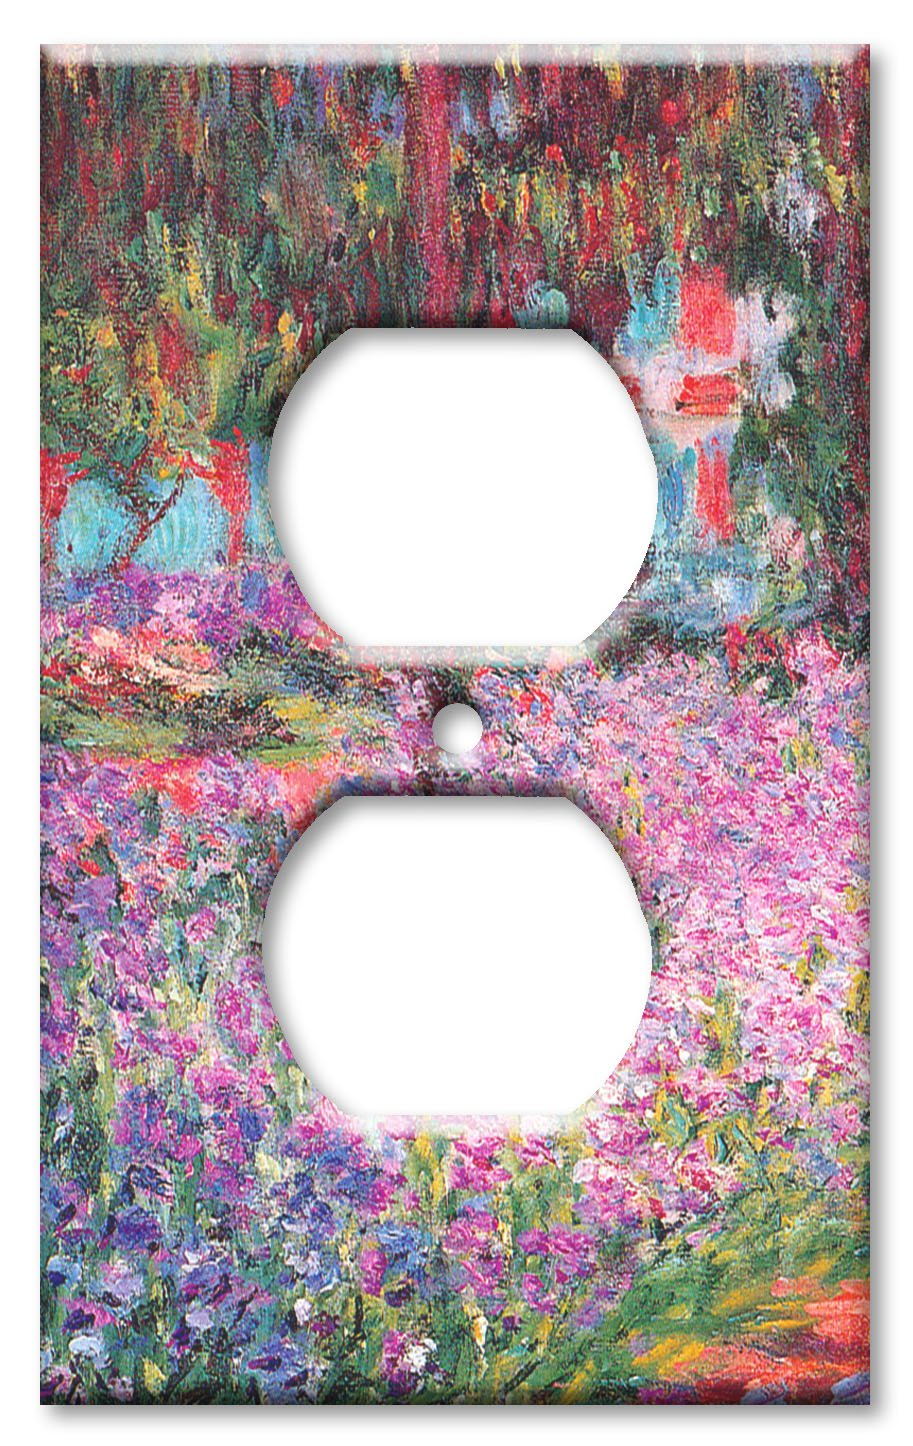 Art Plates - Monet: The Artist's Garden Switch Plate - Outlet Cover